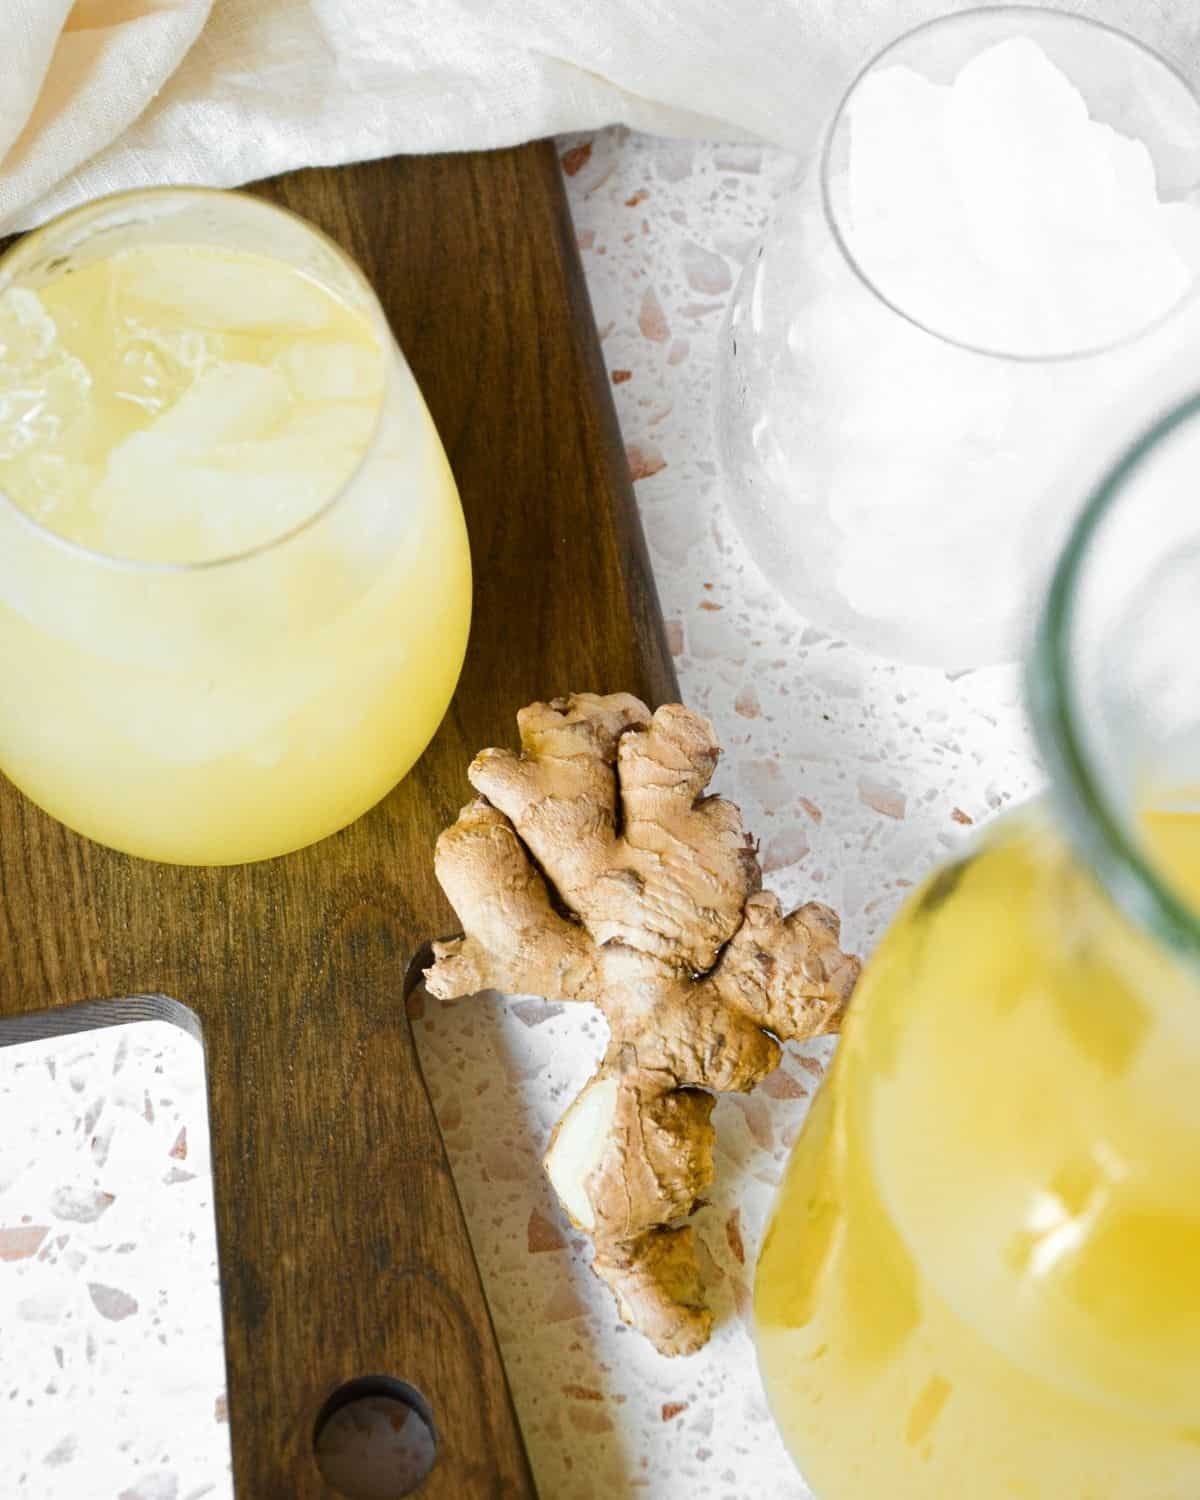 Pineapple ginger juice in a glass.